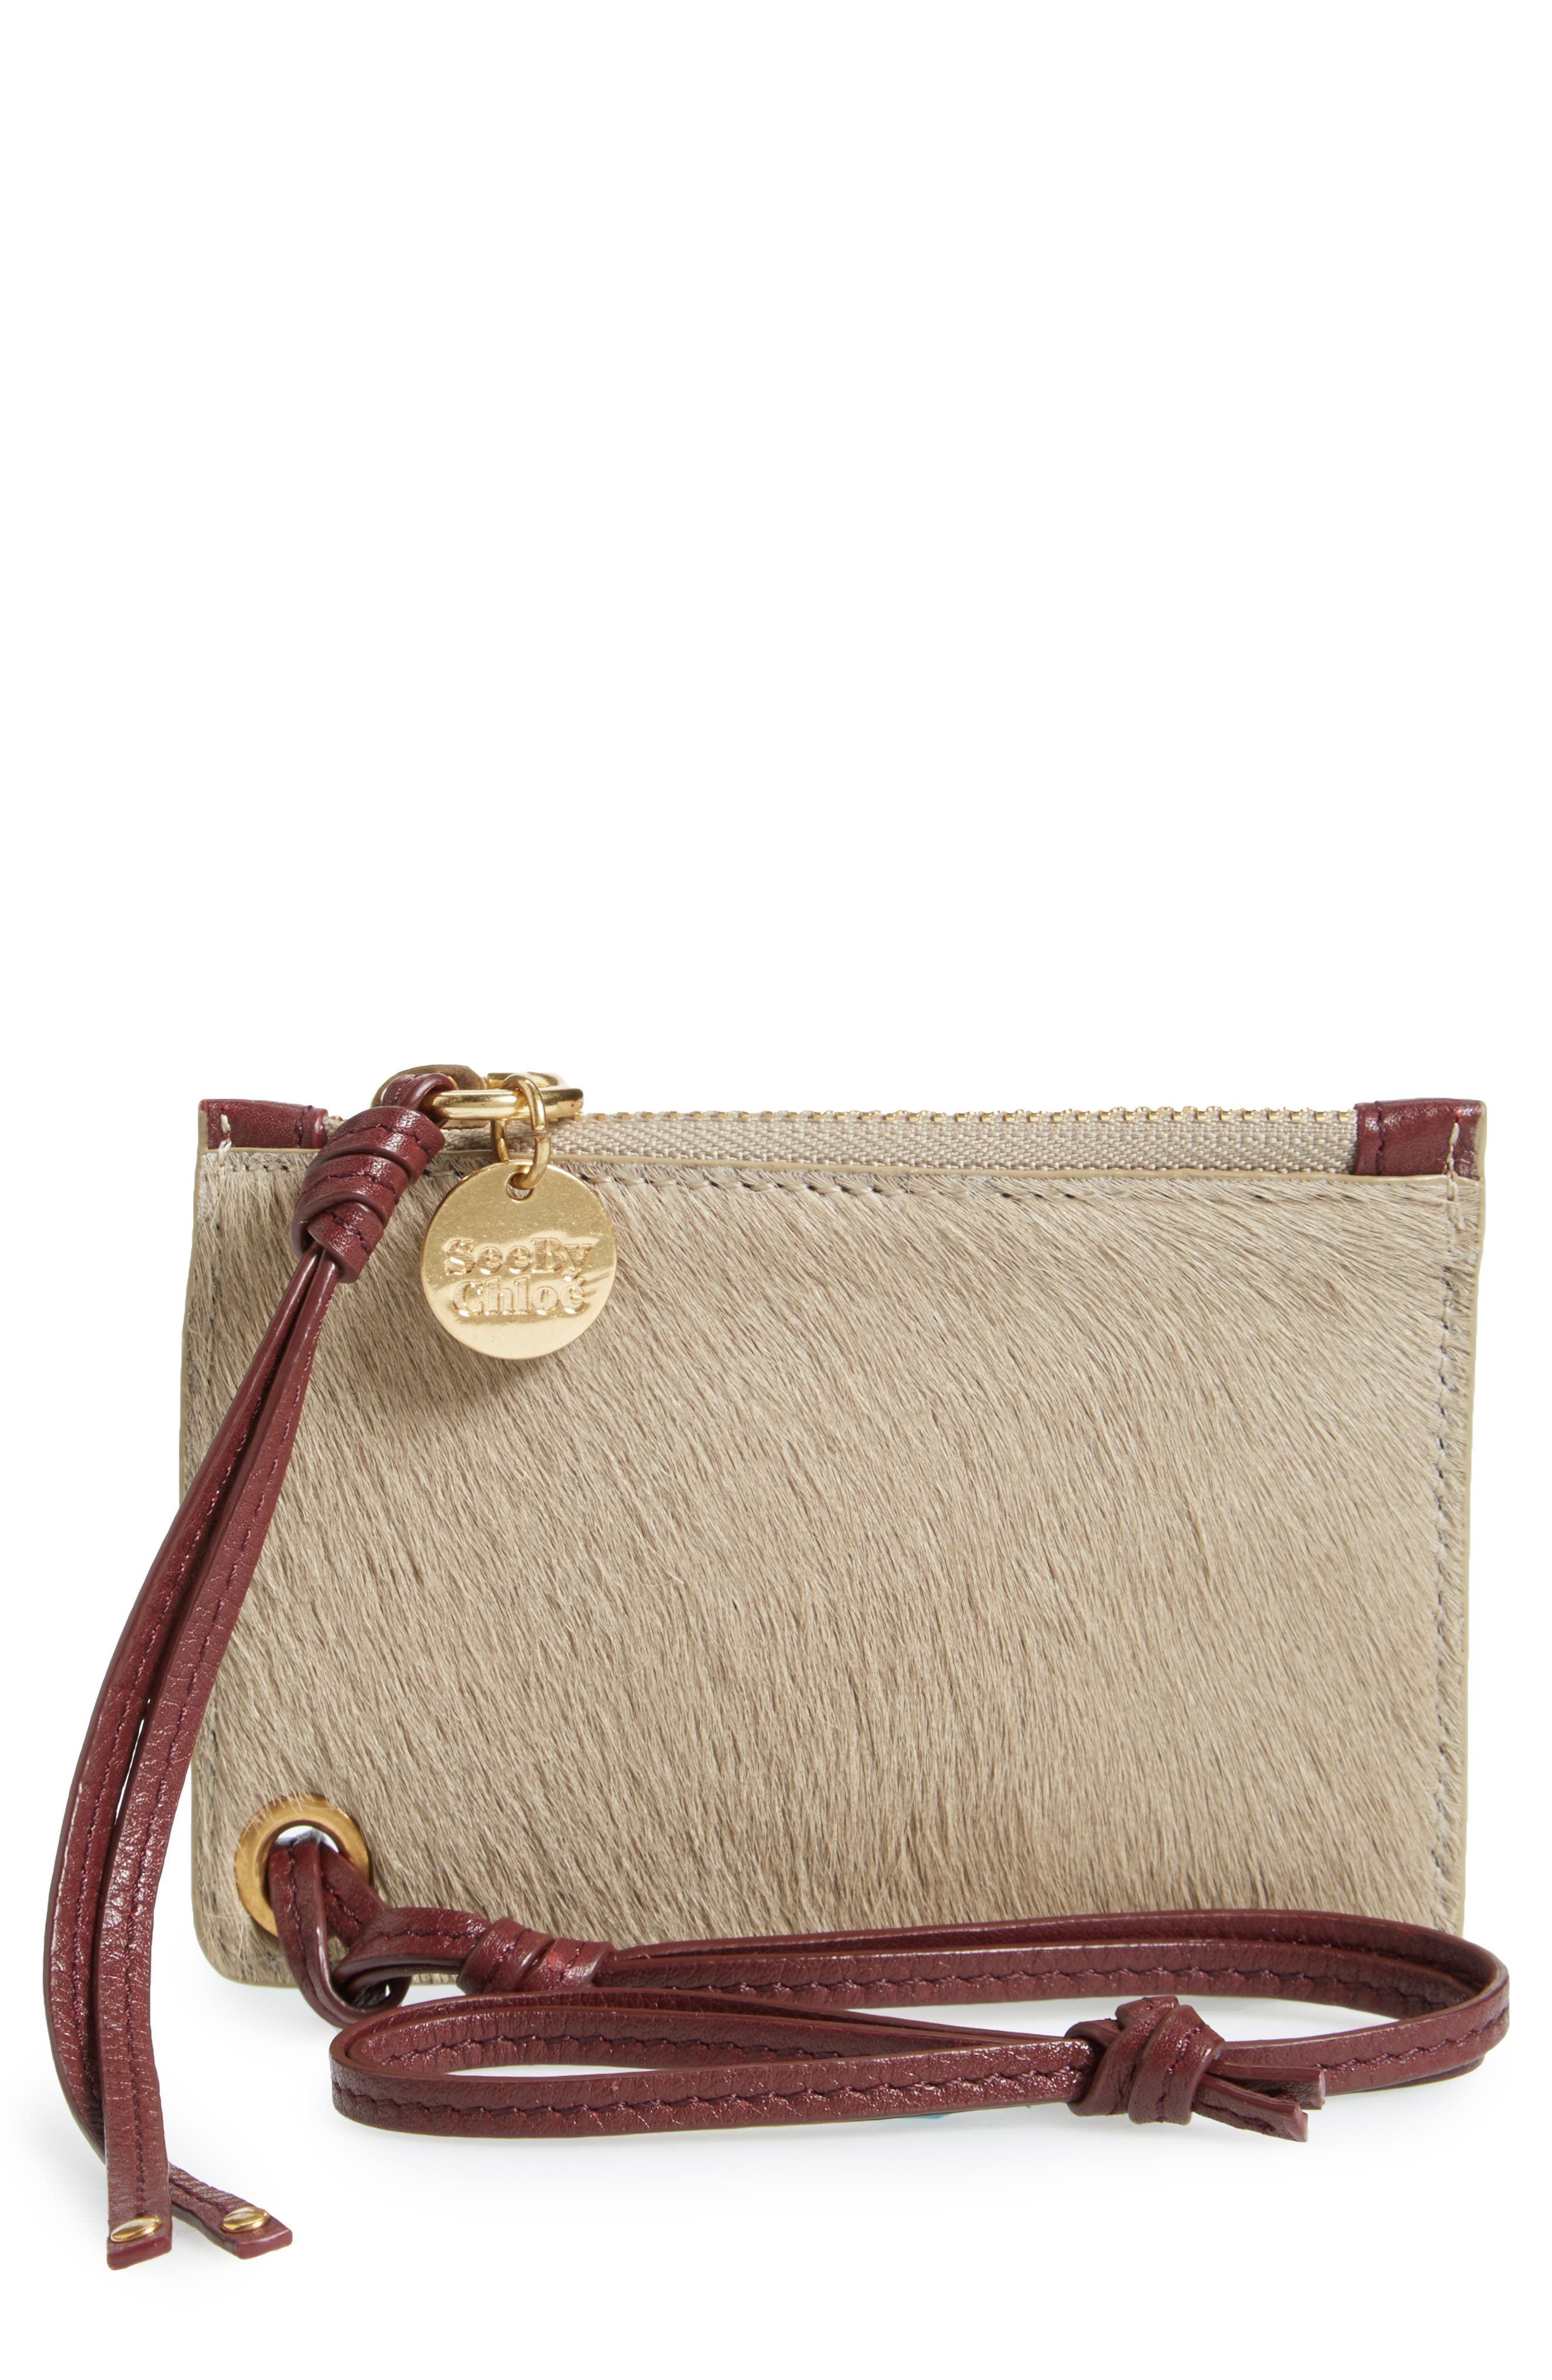 Main Image - See by Chloé Genuine Calf Hair Passport Holder & Leather Card Case